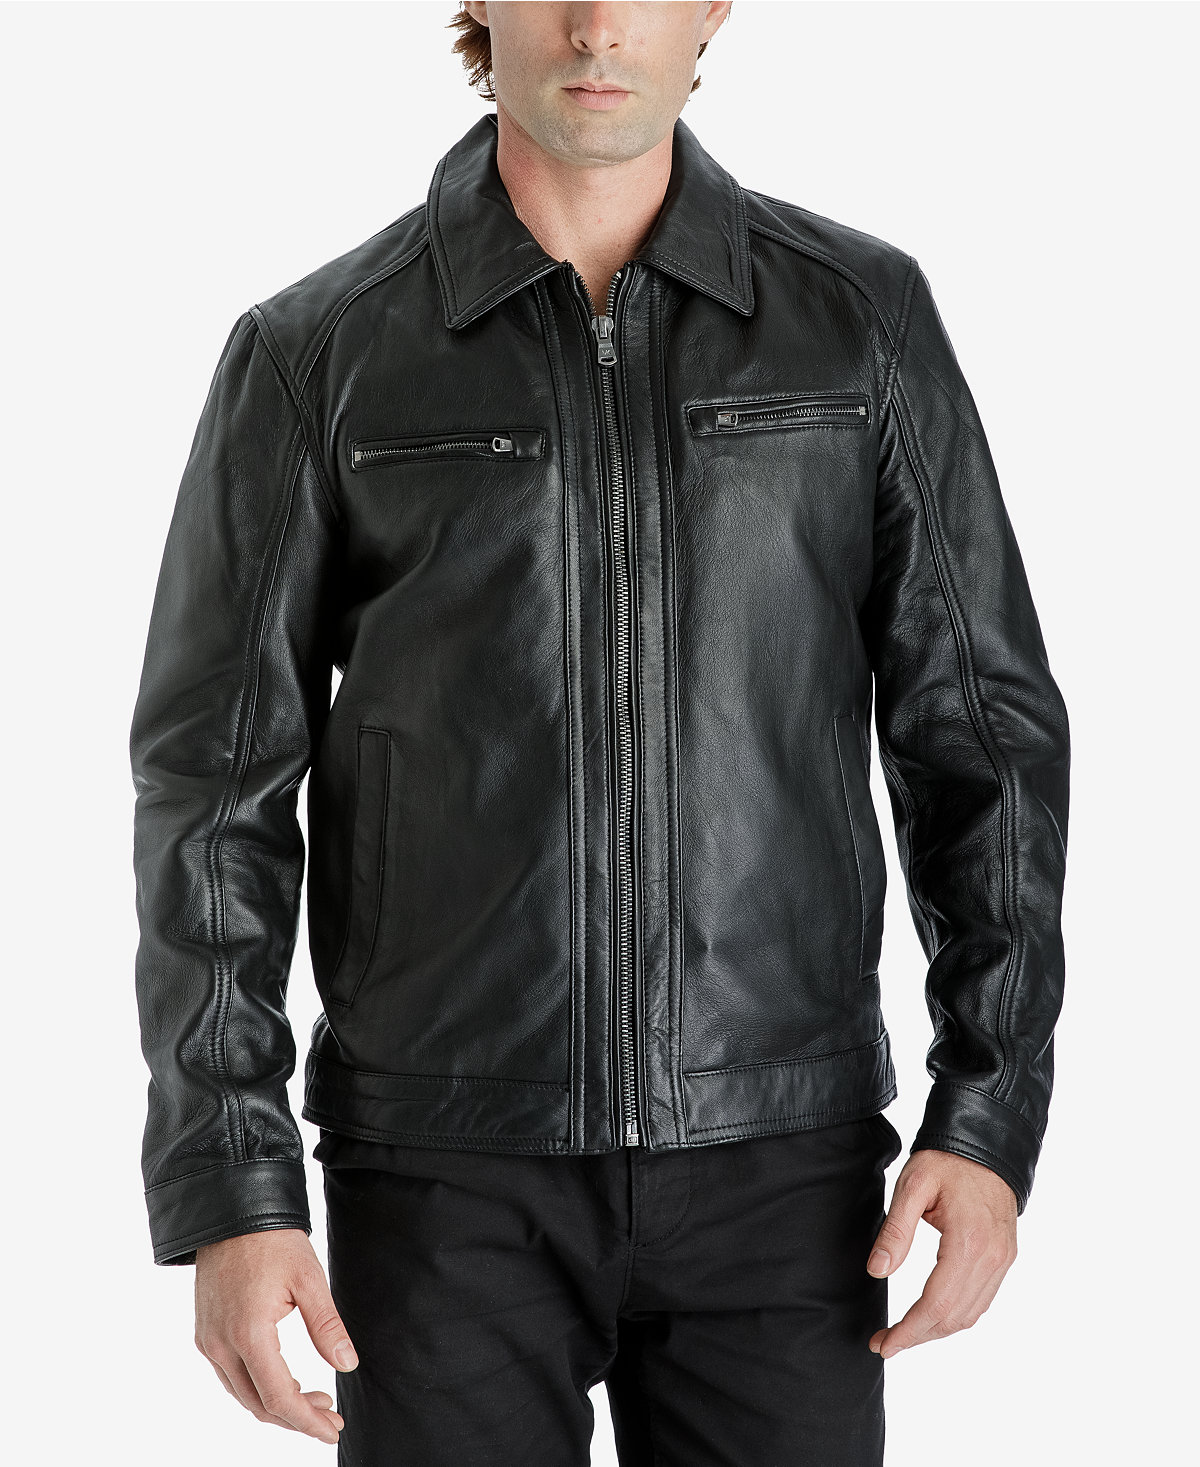 c9e659b16 Michael Kors Men's Leather Bomber Jacket